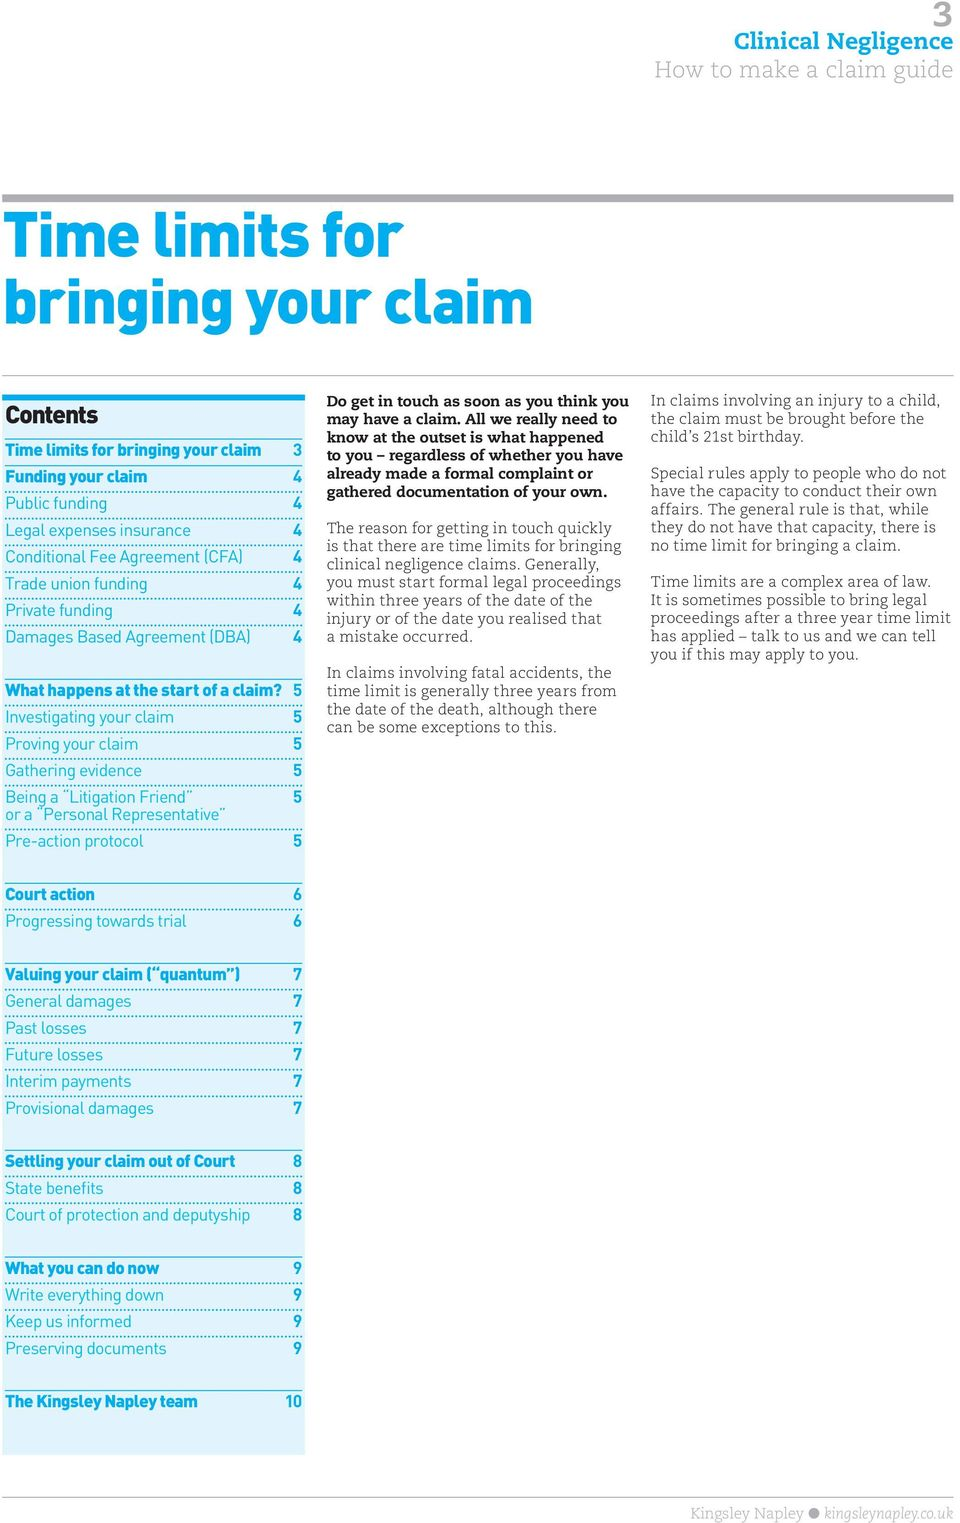 5 Investigating your claim 5 Proving your claim 5 Gathering evidence 5 Being a Litigation Friend 5 or a Personal Representative Pre-action protocol 5 Do get in touch as soon as you think you may have